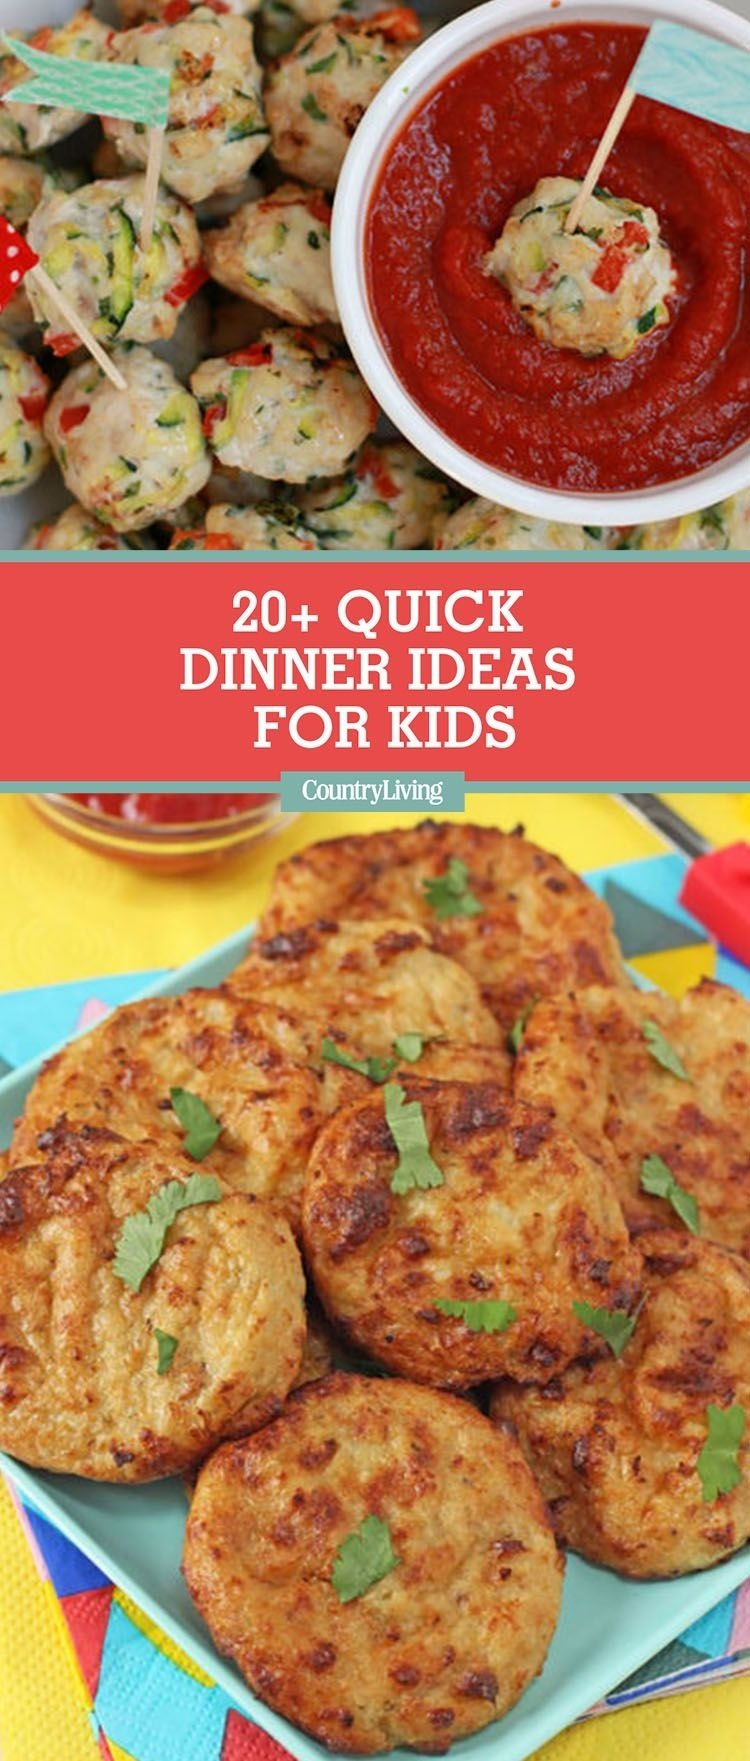 10 Ideal Ideas For A Quick Dinner 20 easy dinner ideas for kids quick kid friendly dinner recipes 4 2020